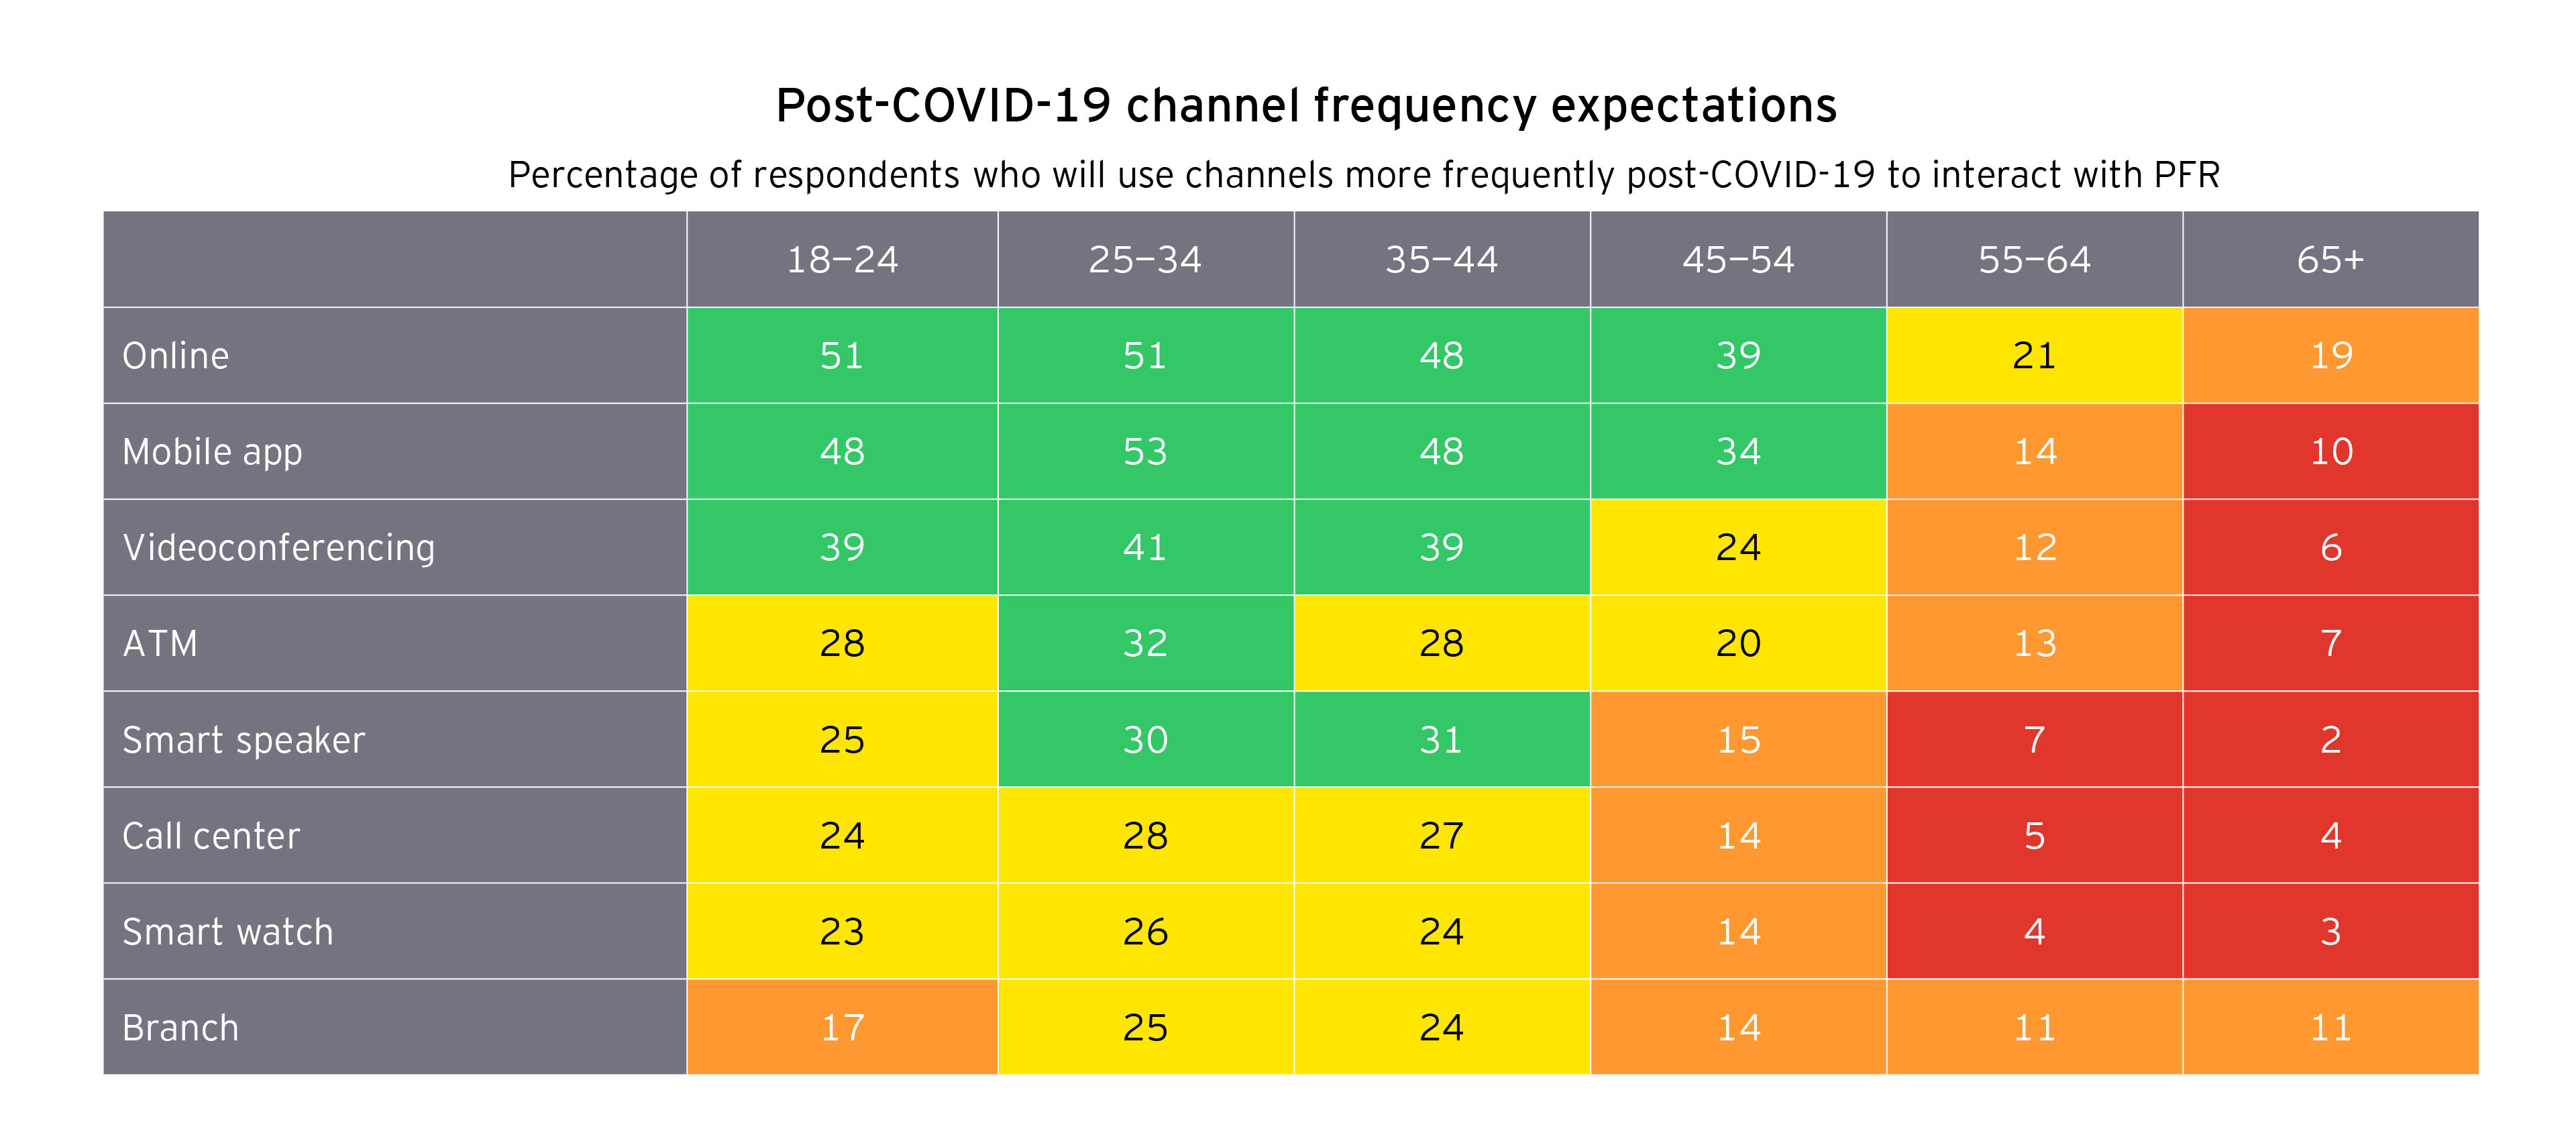 Table of post COVID-19 channel frequency expectations